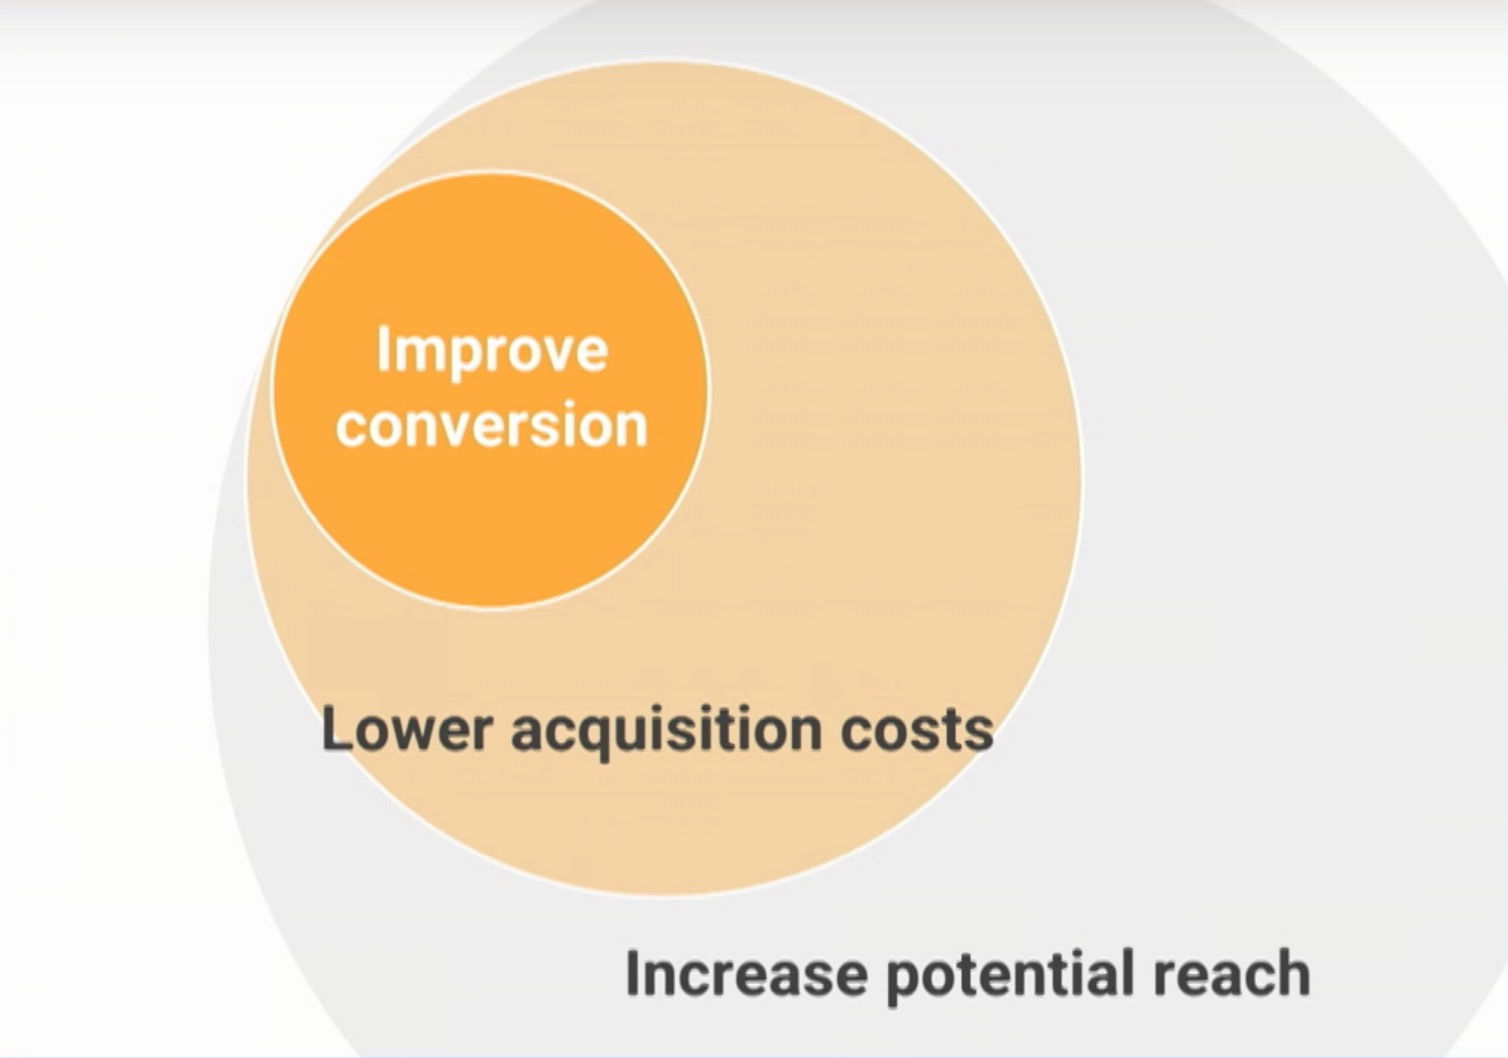 Progressive web app improve conversion lower acquistions costs and increase reach